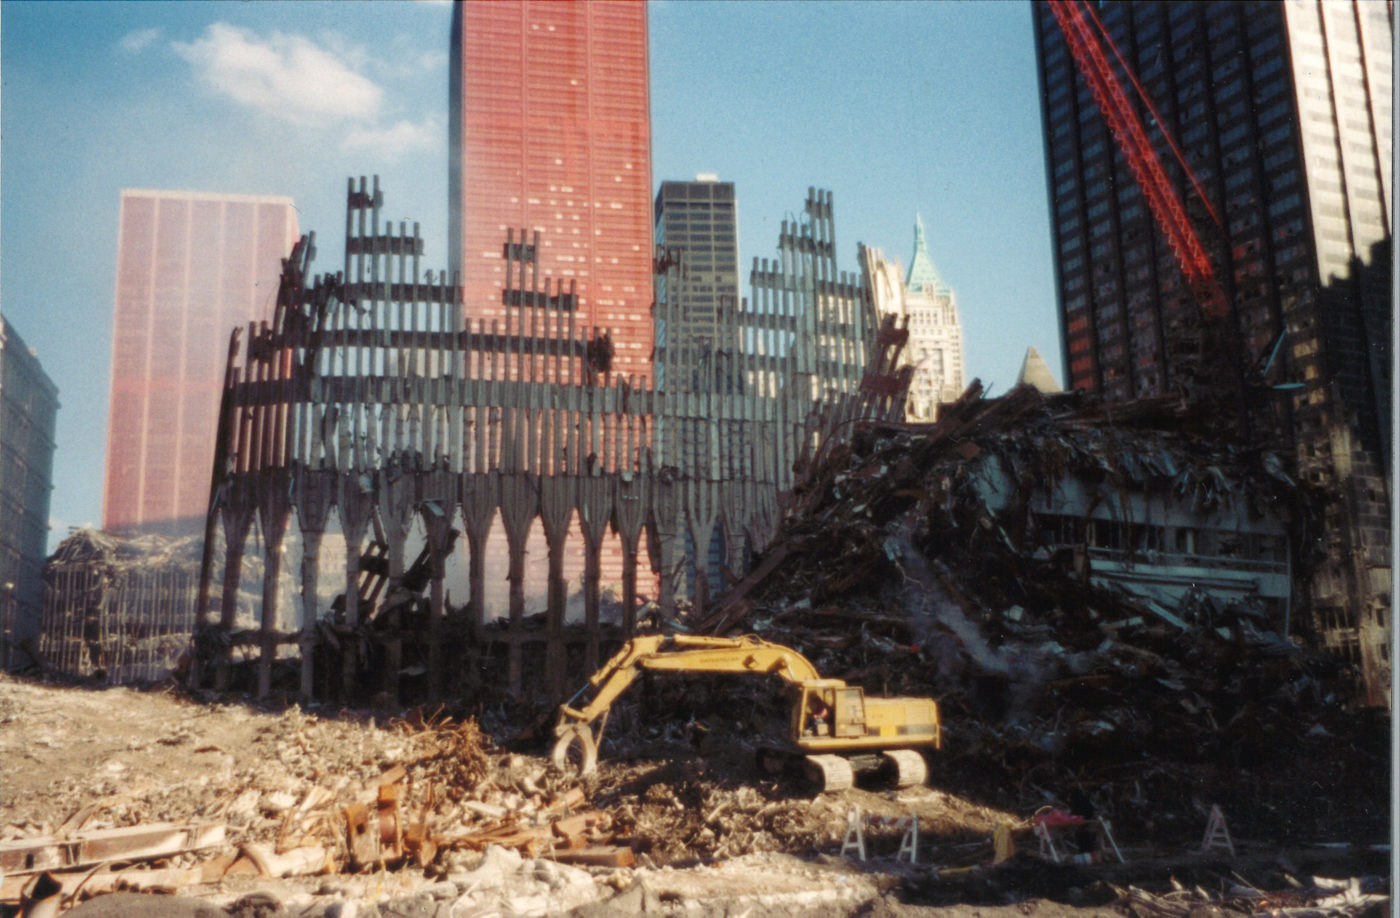 Digger Working to Clear Debris at Ground Zero in Front of the WTC Exoskeleton